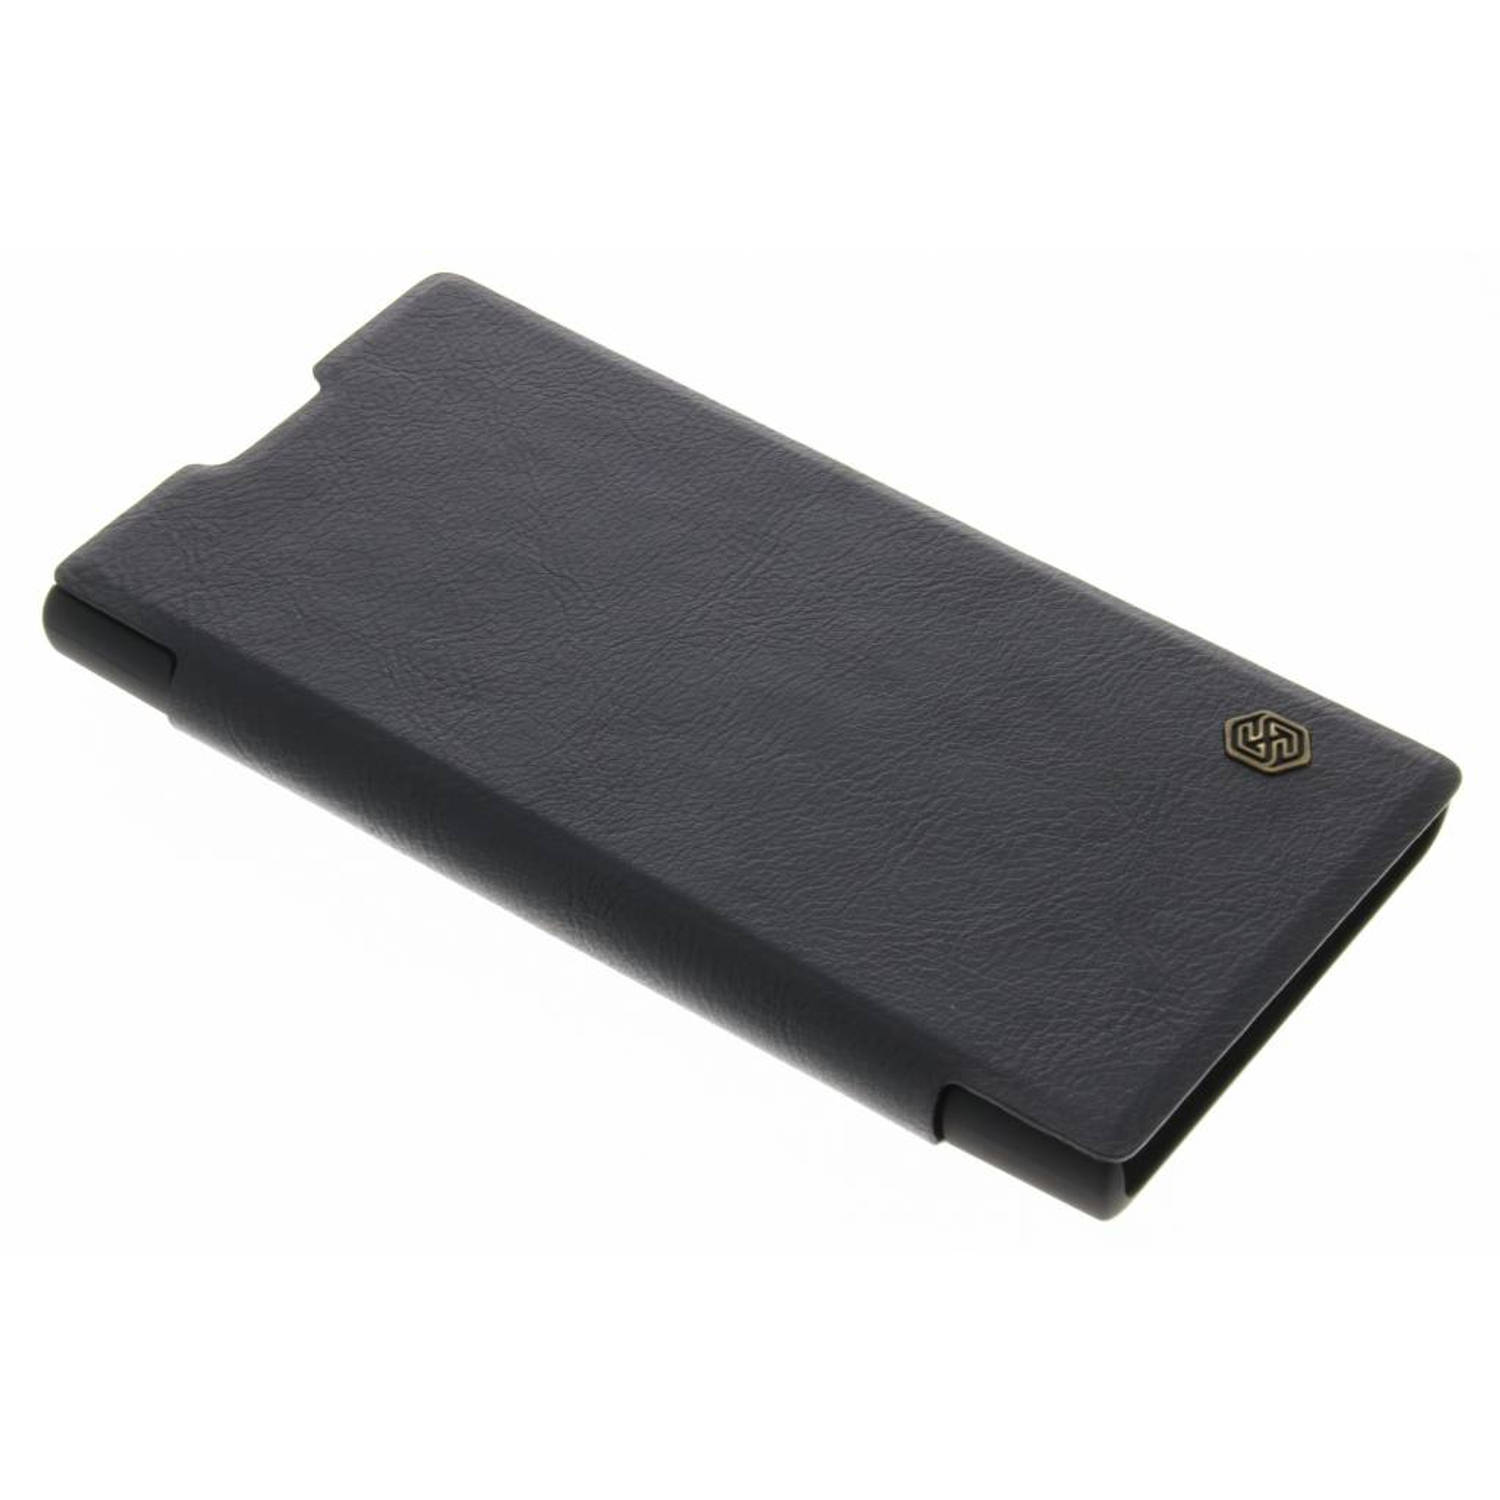 Zwarte qin leather slim booktype hoes voor de sony xperia l1